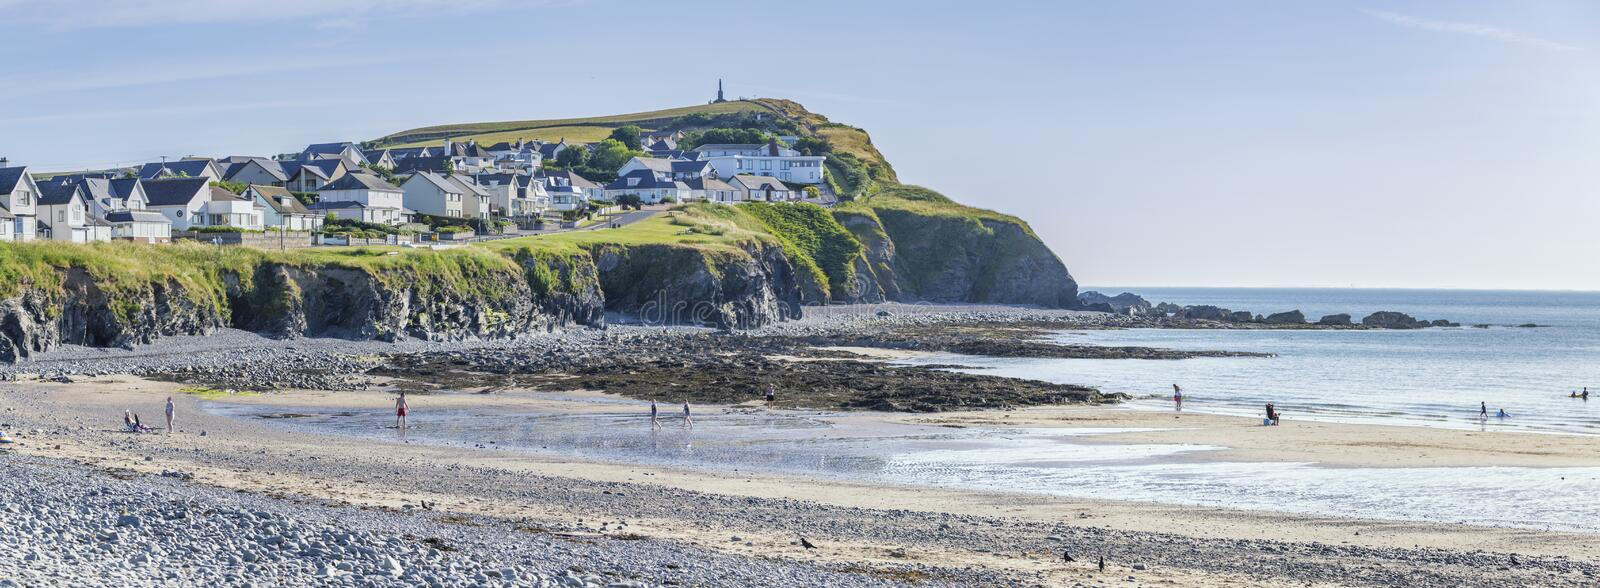 Panoramic View of Scenic Beach in Wales, UK. Panoramic view over scenic  beach at low tide on bright summer day in Borth, Wales in United Kingdom royalty free stock images